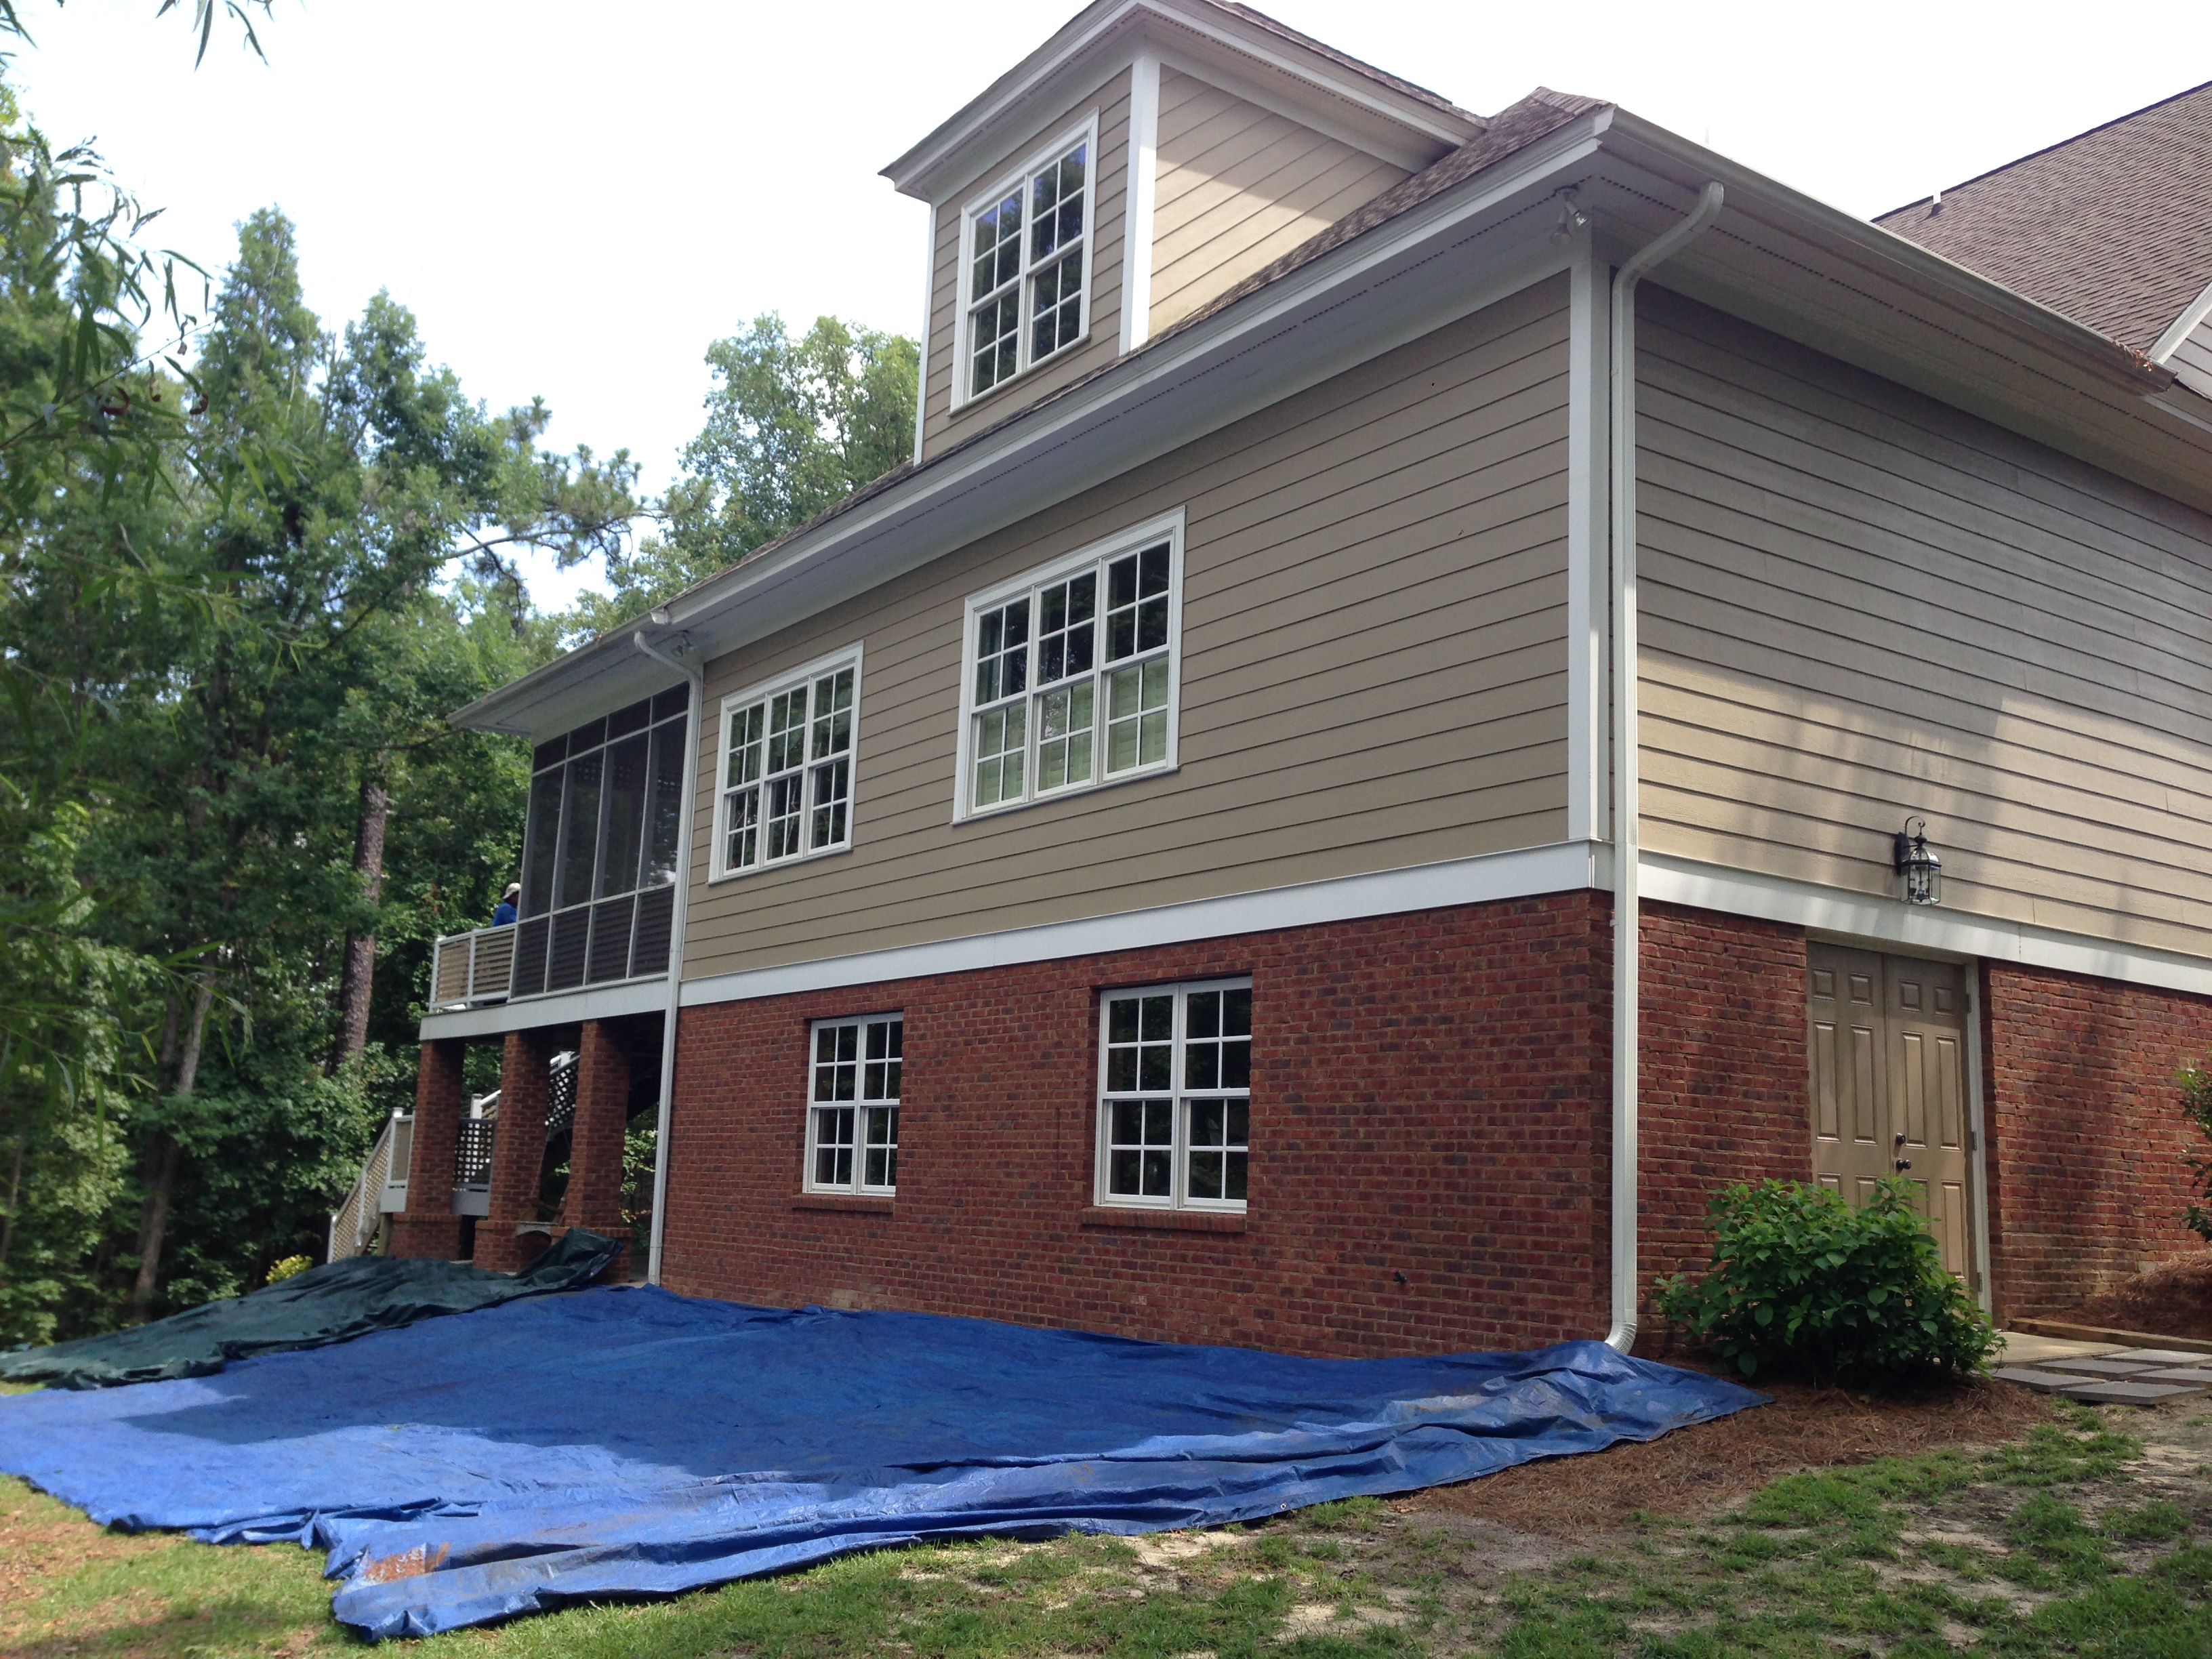 Home Siding Vinyl Siding For Homes American Roofing